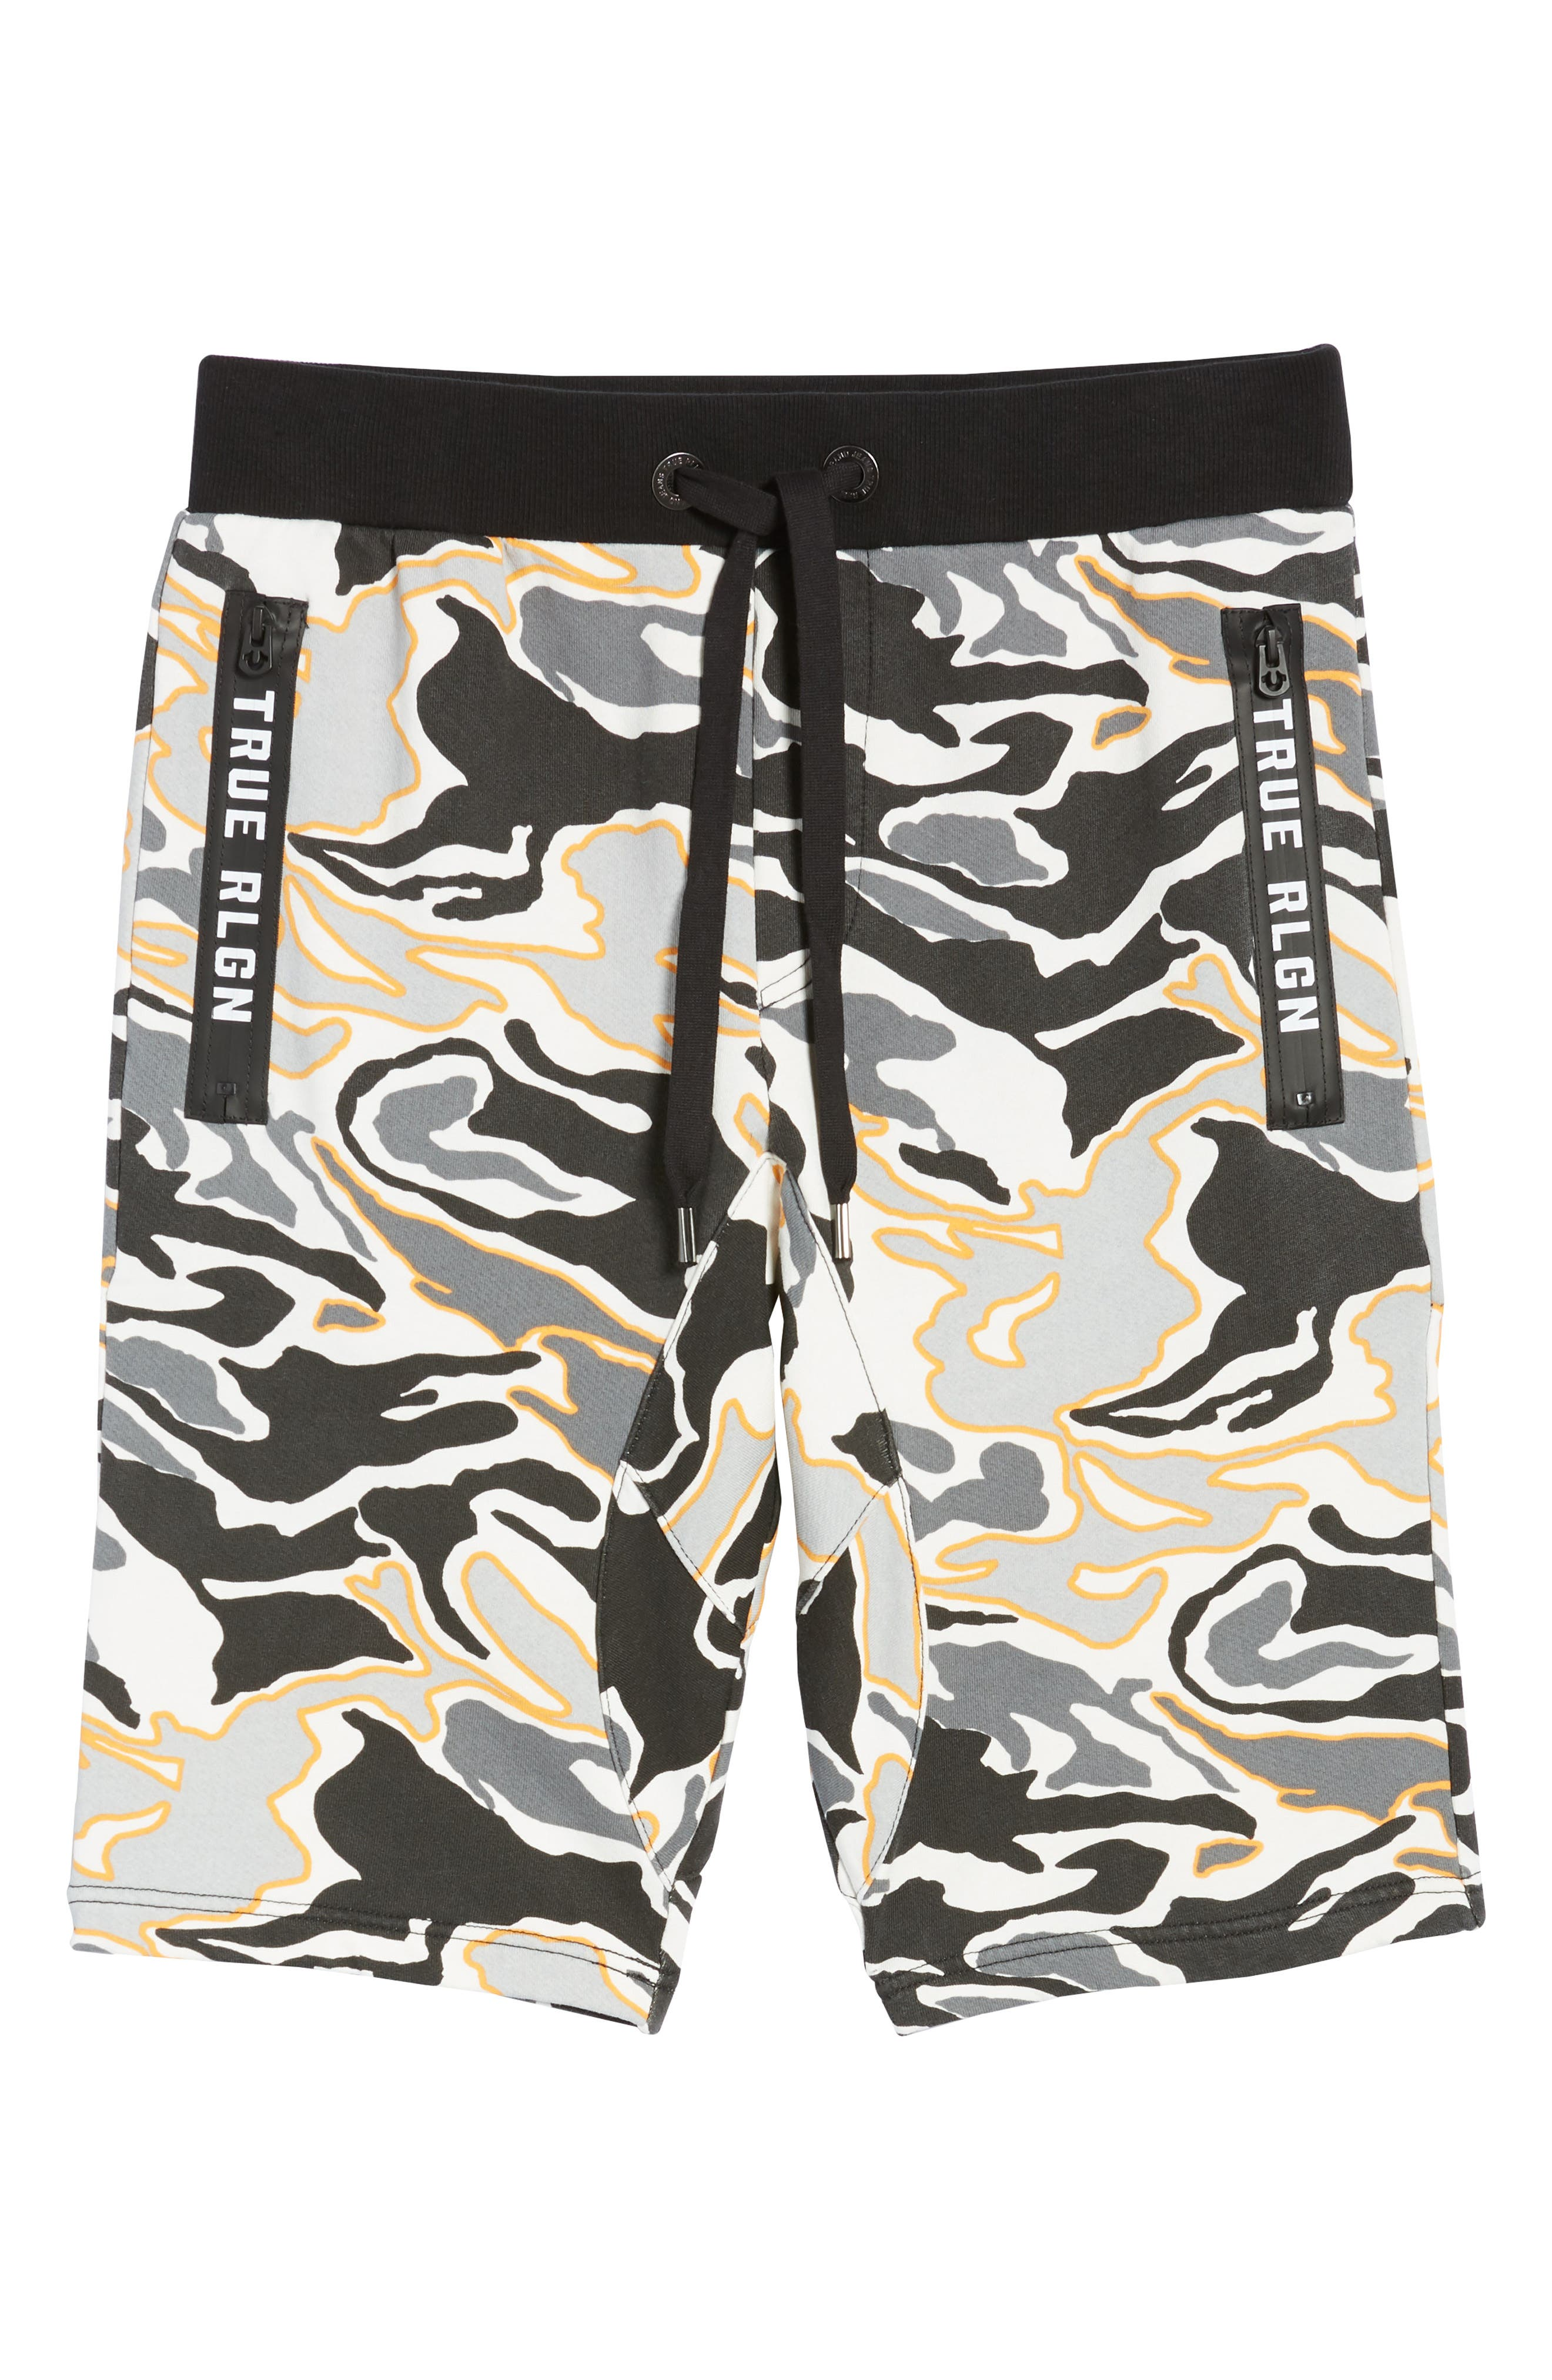 Exposed Zip Sweat Shorts,                             Alternate thumbnail 6, color,                             Multi Grey Camo